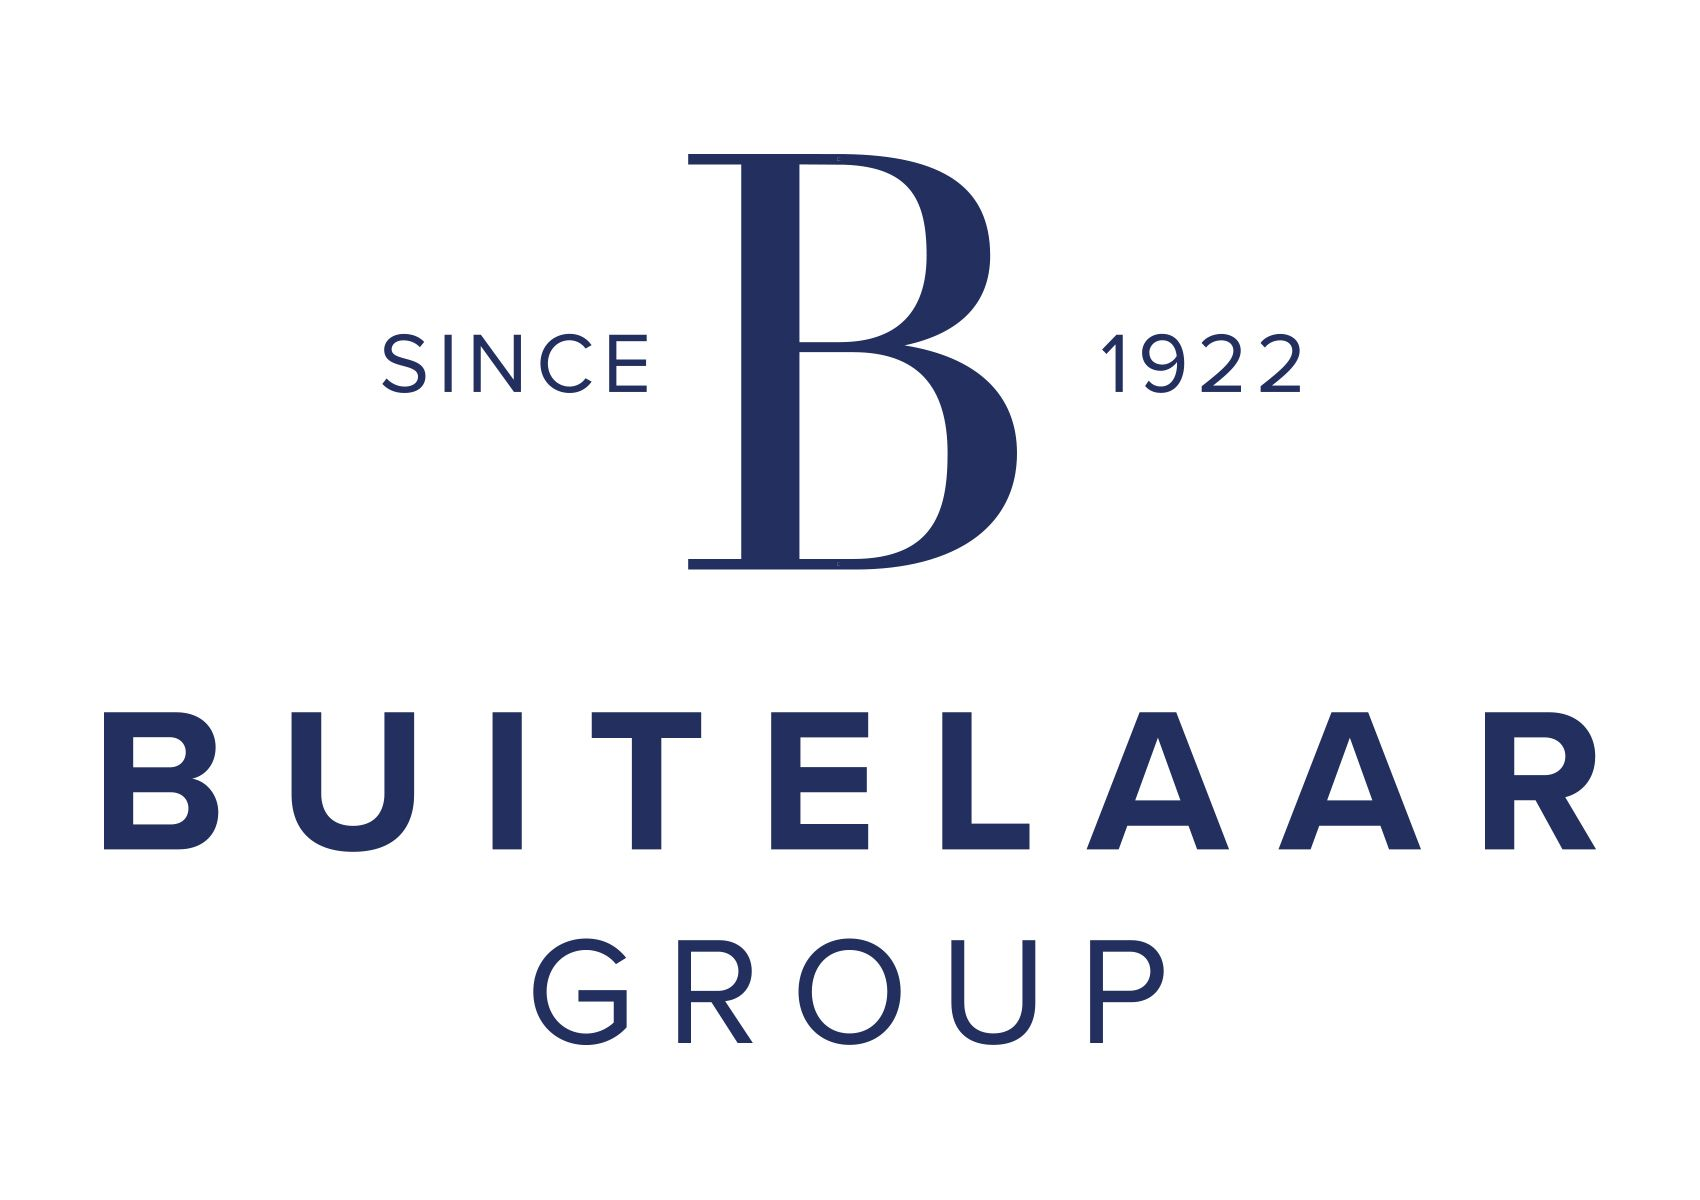 BUITELAAR GROUP